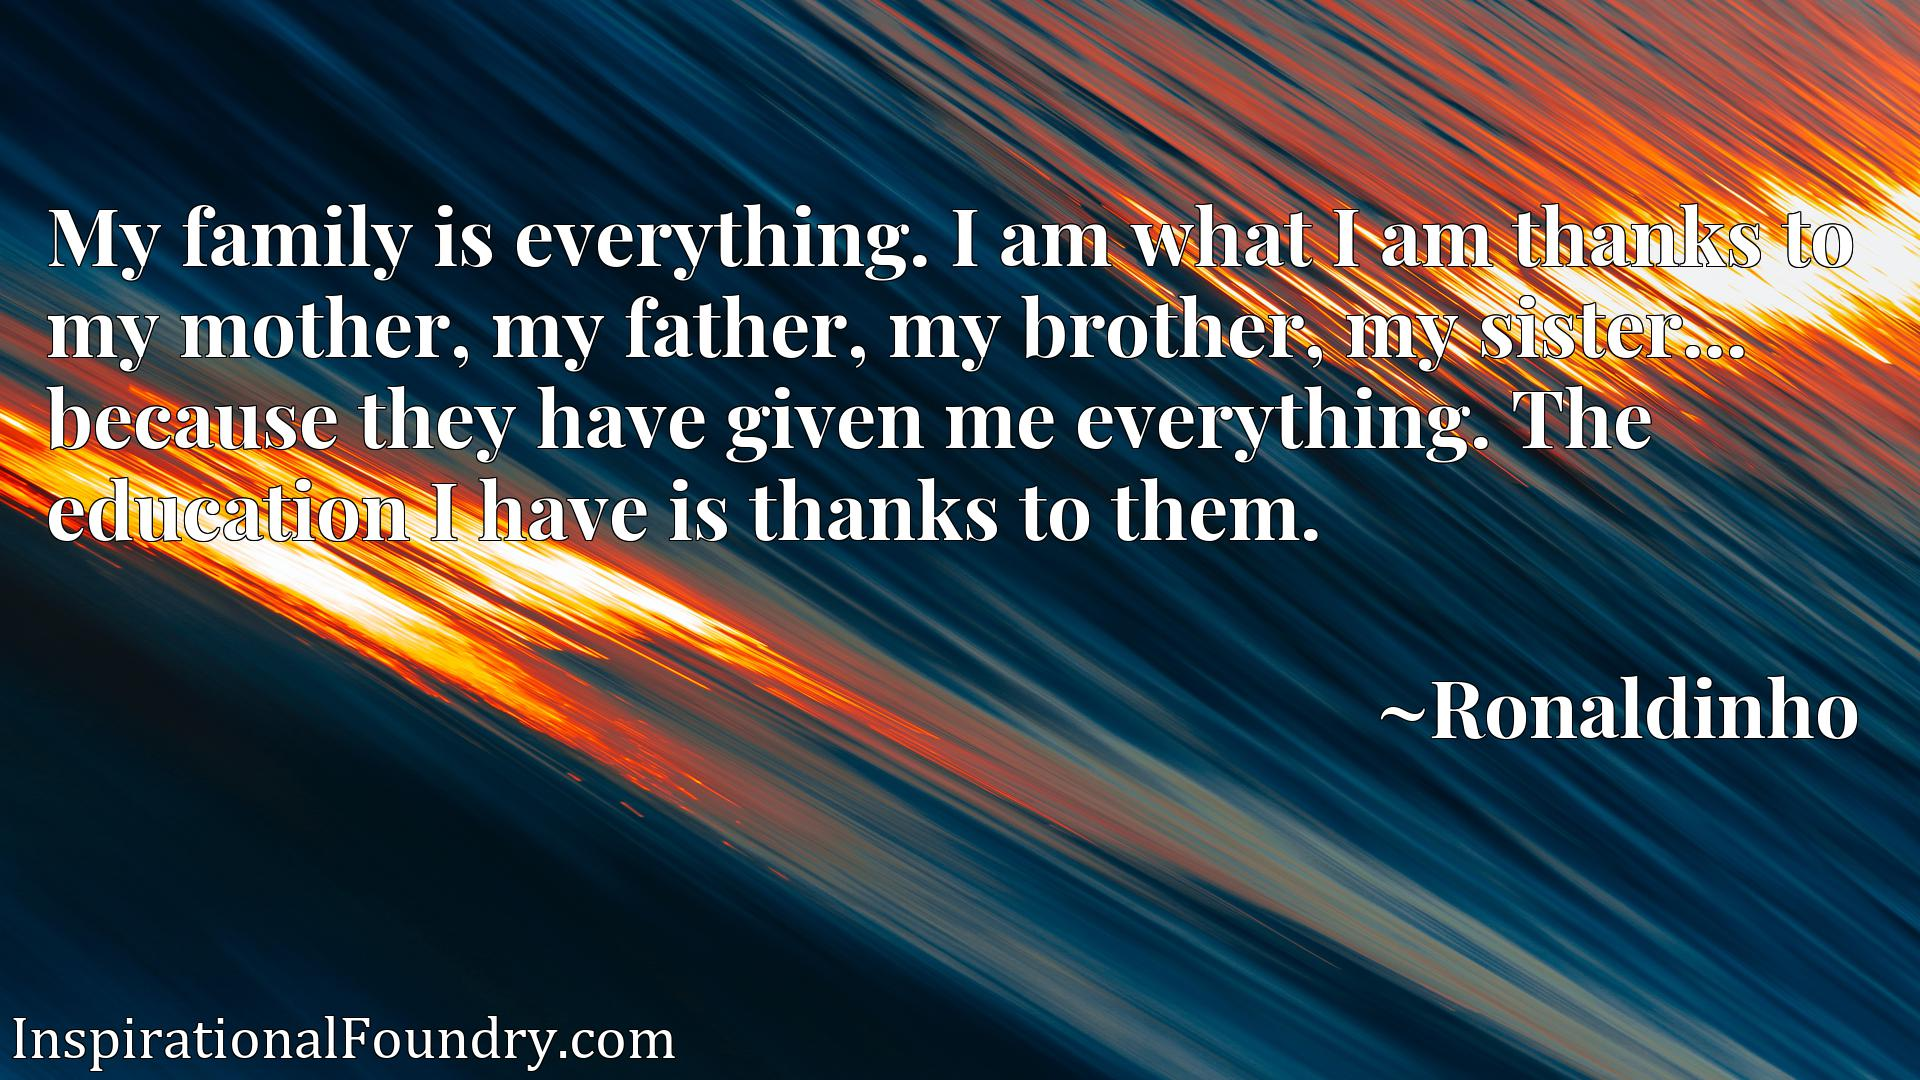 My family is everything. I am what I am thanks to my mother, my father, my brother, my sister... because they have given me everything. The education I have is thanks to them.